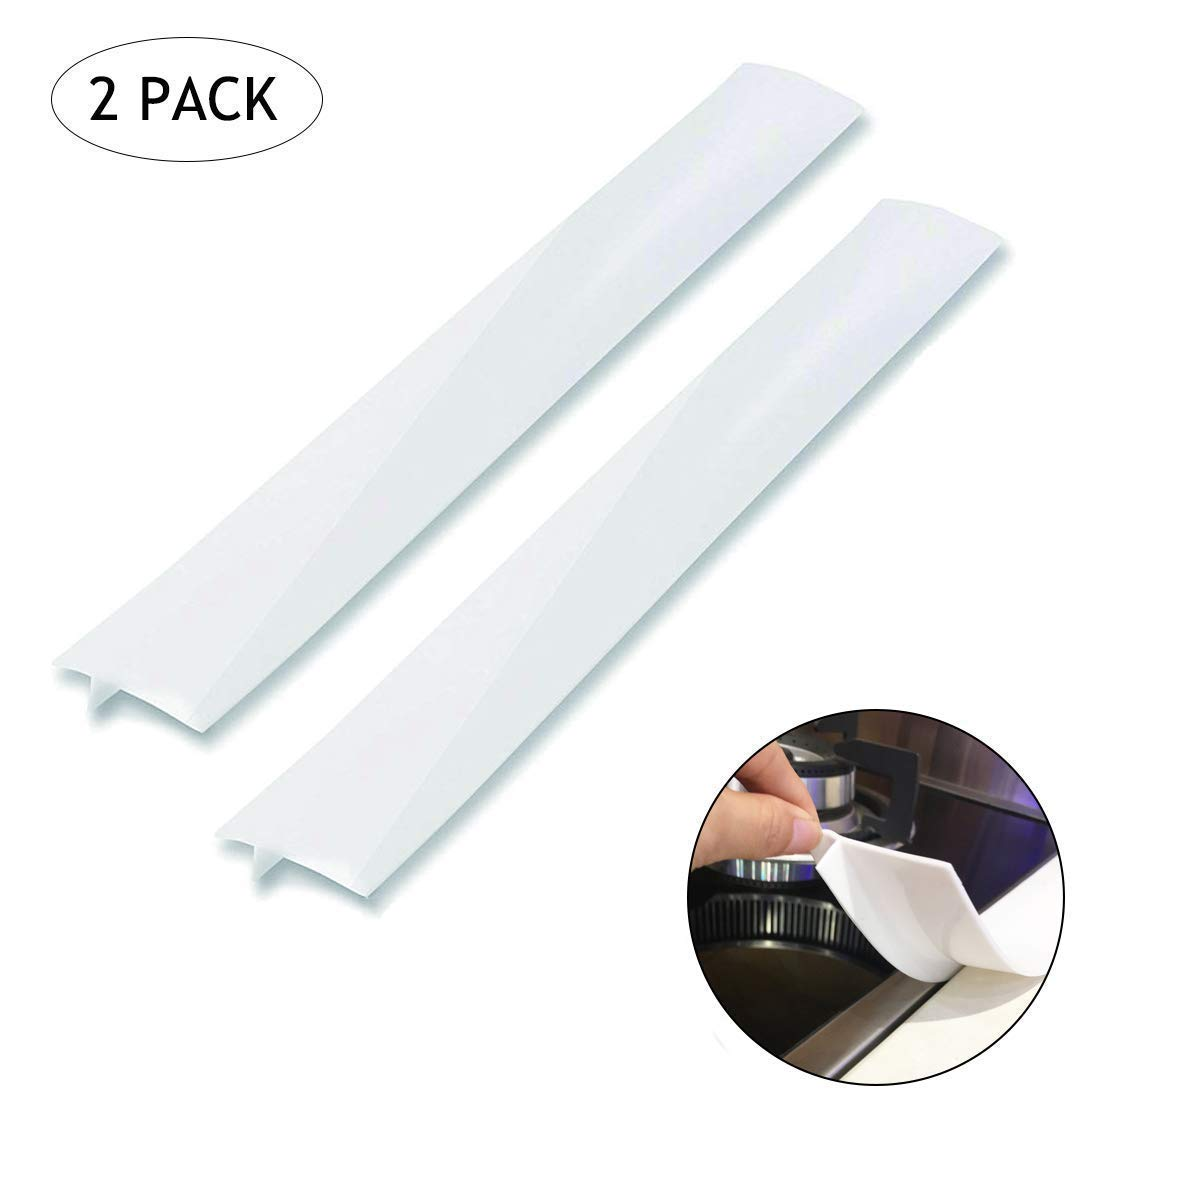 Kitchen Silicone Stove Counter Gap Cover, Easy Clean Heat Resistant Wide & Long Gap Filler, Seals Spills Between Counter, Stovetop, Oven, Washer & Dryer, Set of 2 (21 Inches, White)